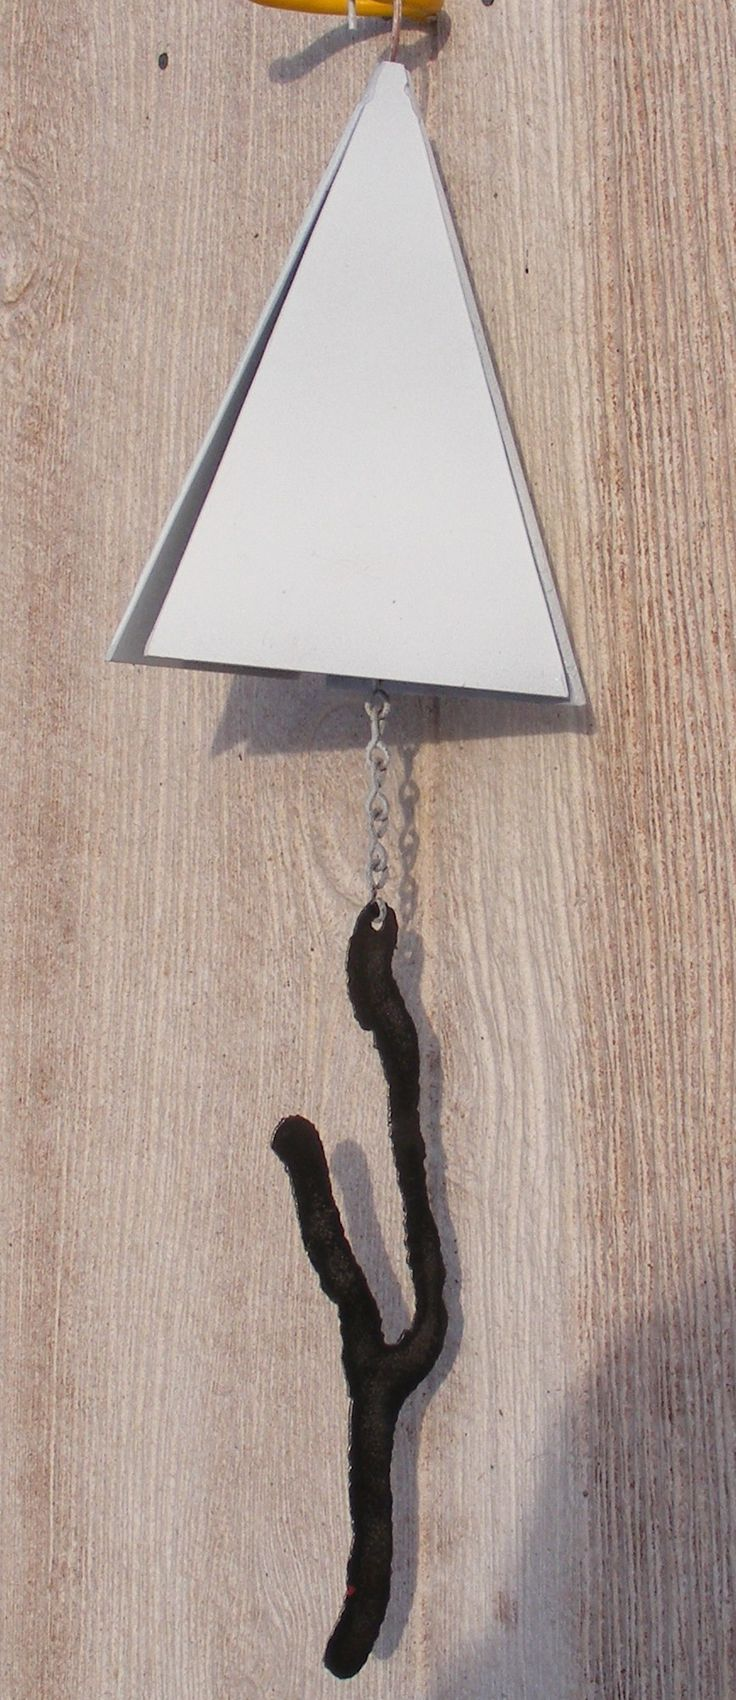 Steel pyramid keuka lake wind chime products pinterest for Colored porcelain koi fish wind chime